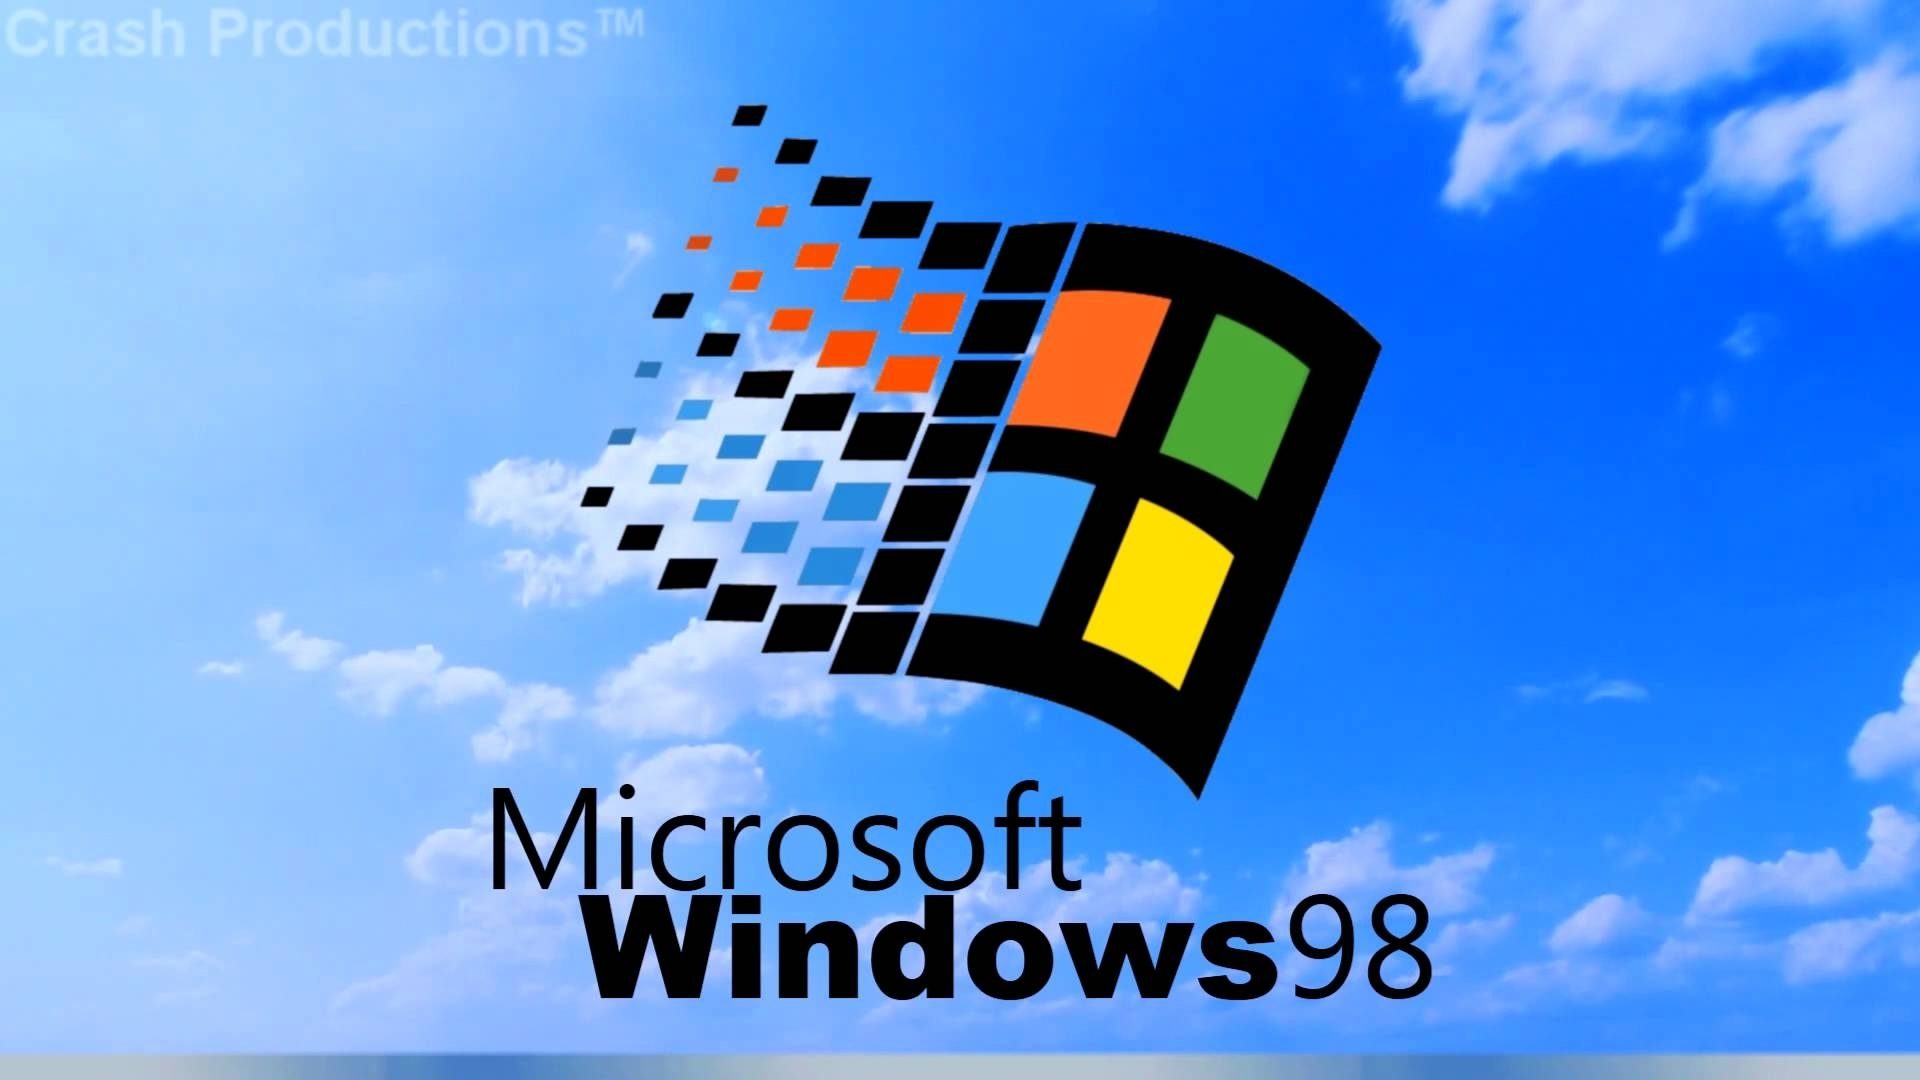 windows 98 wallpapers - 36 windows 98 modern hd images - d-screens